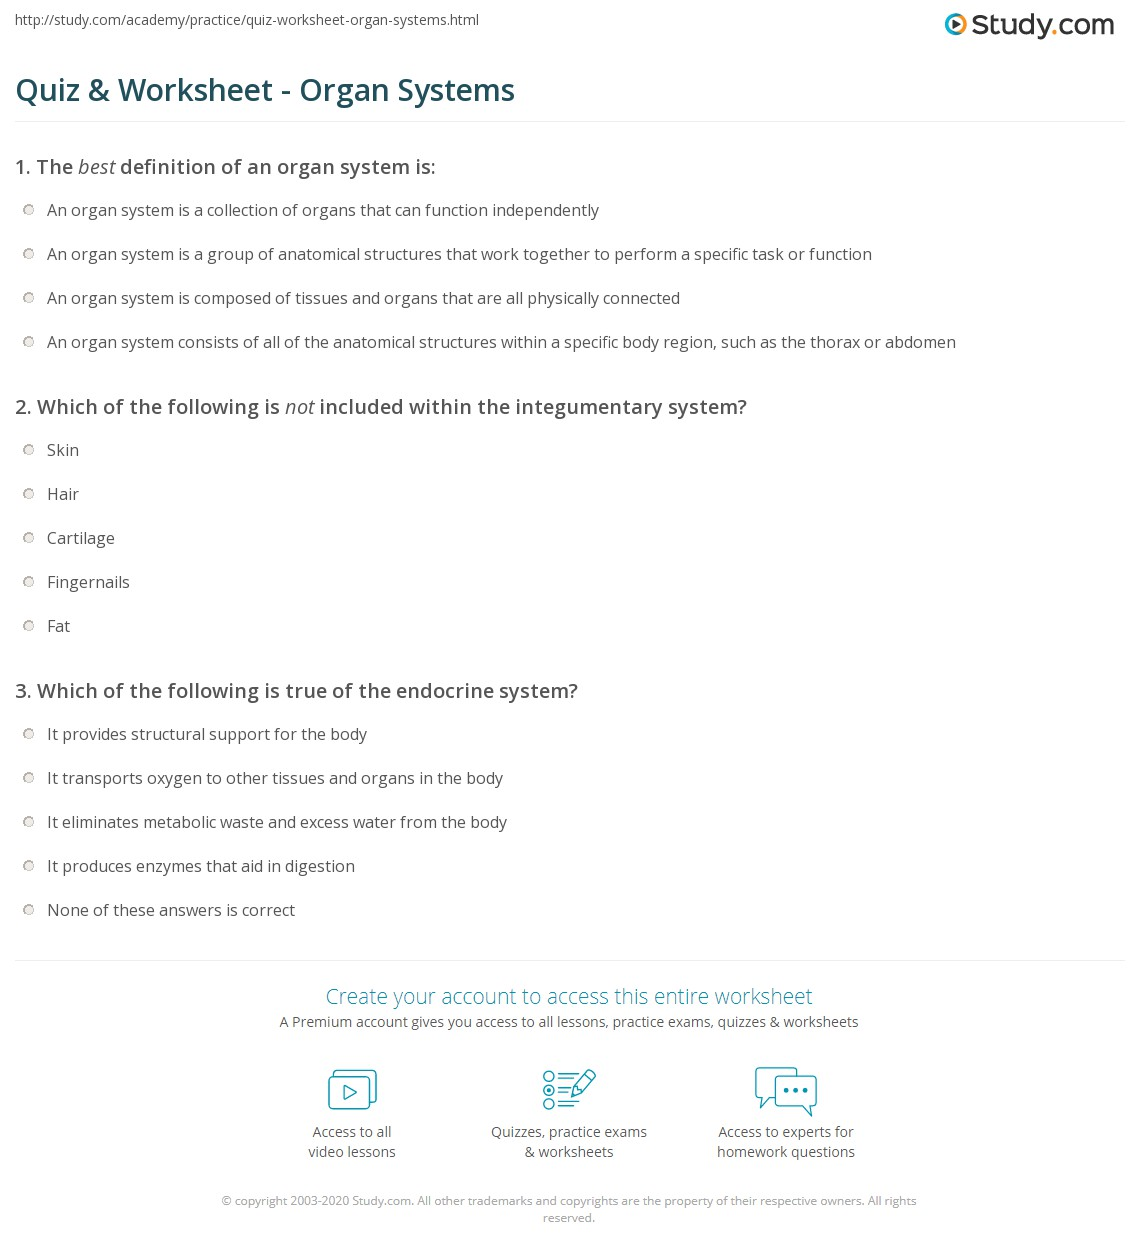 Quiz & Worksheet - Organ Systems | Study.com